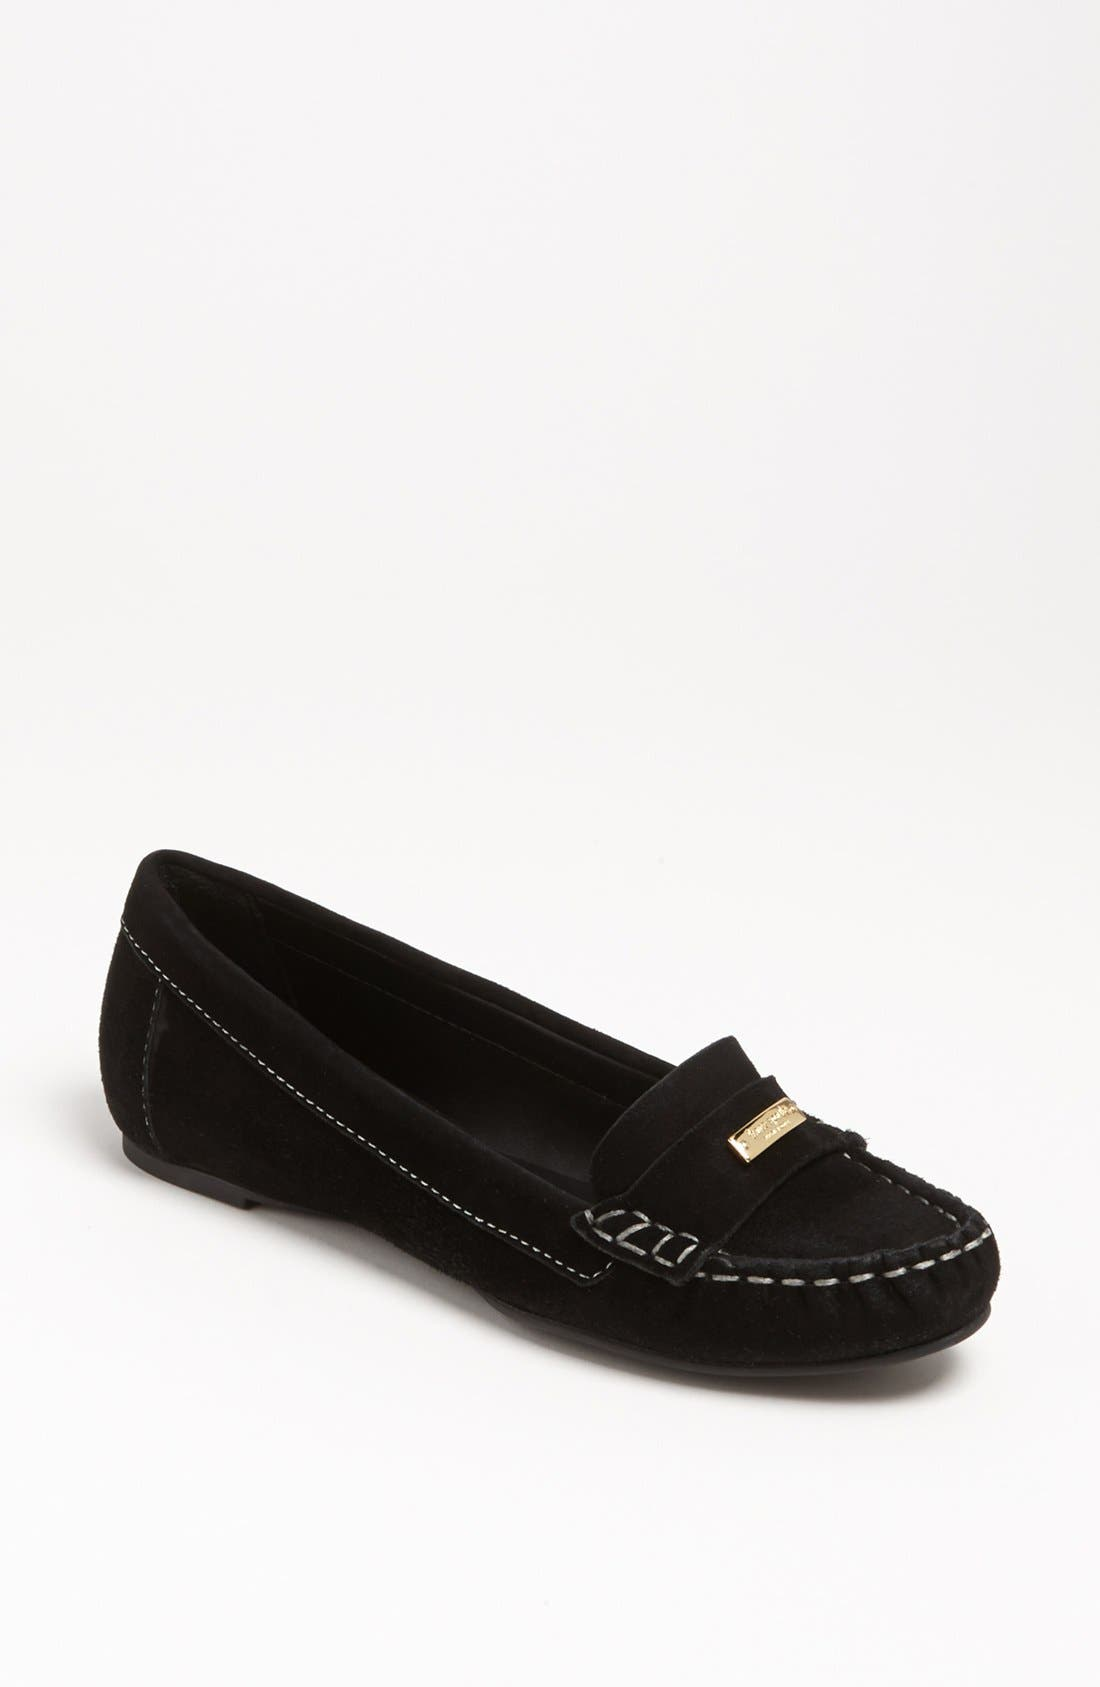 Main Image - kate spade new york 'wilamina' loafer